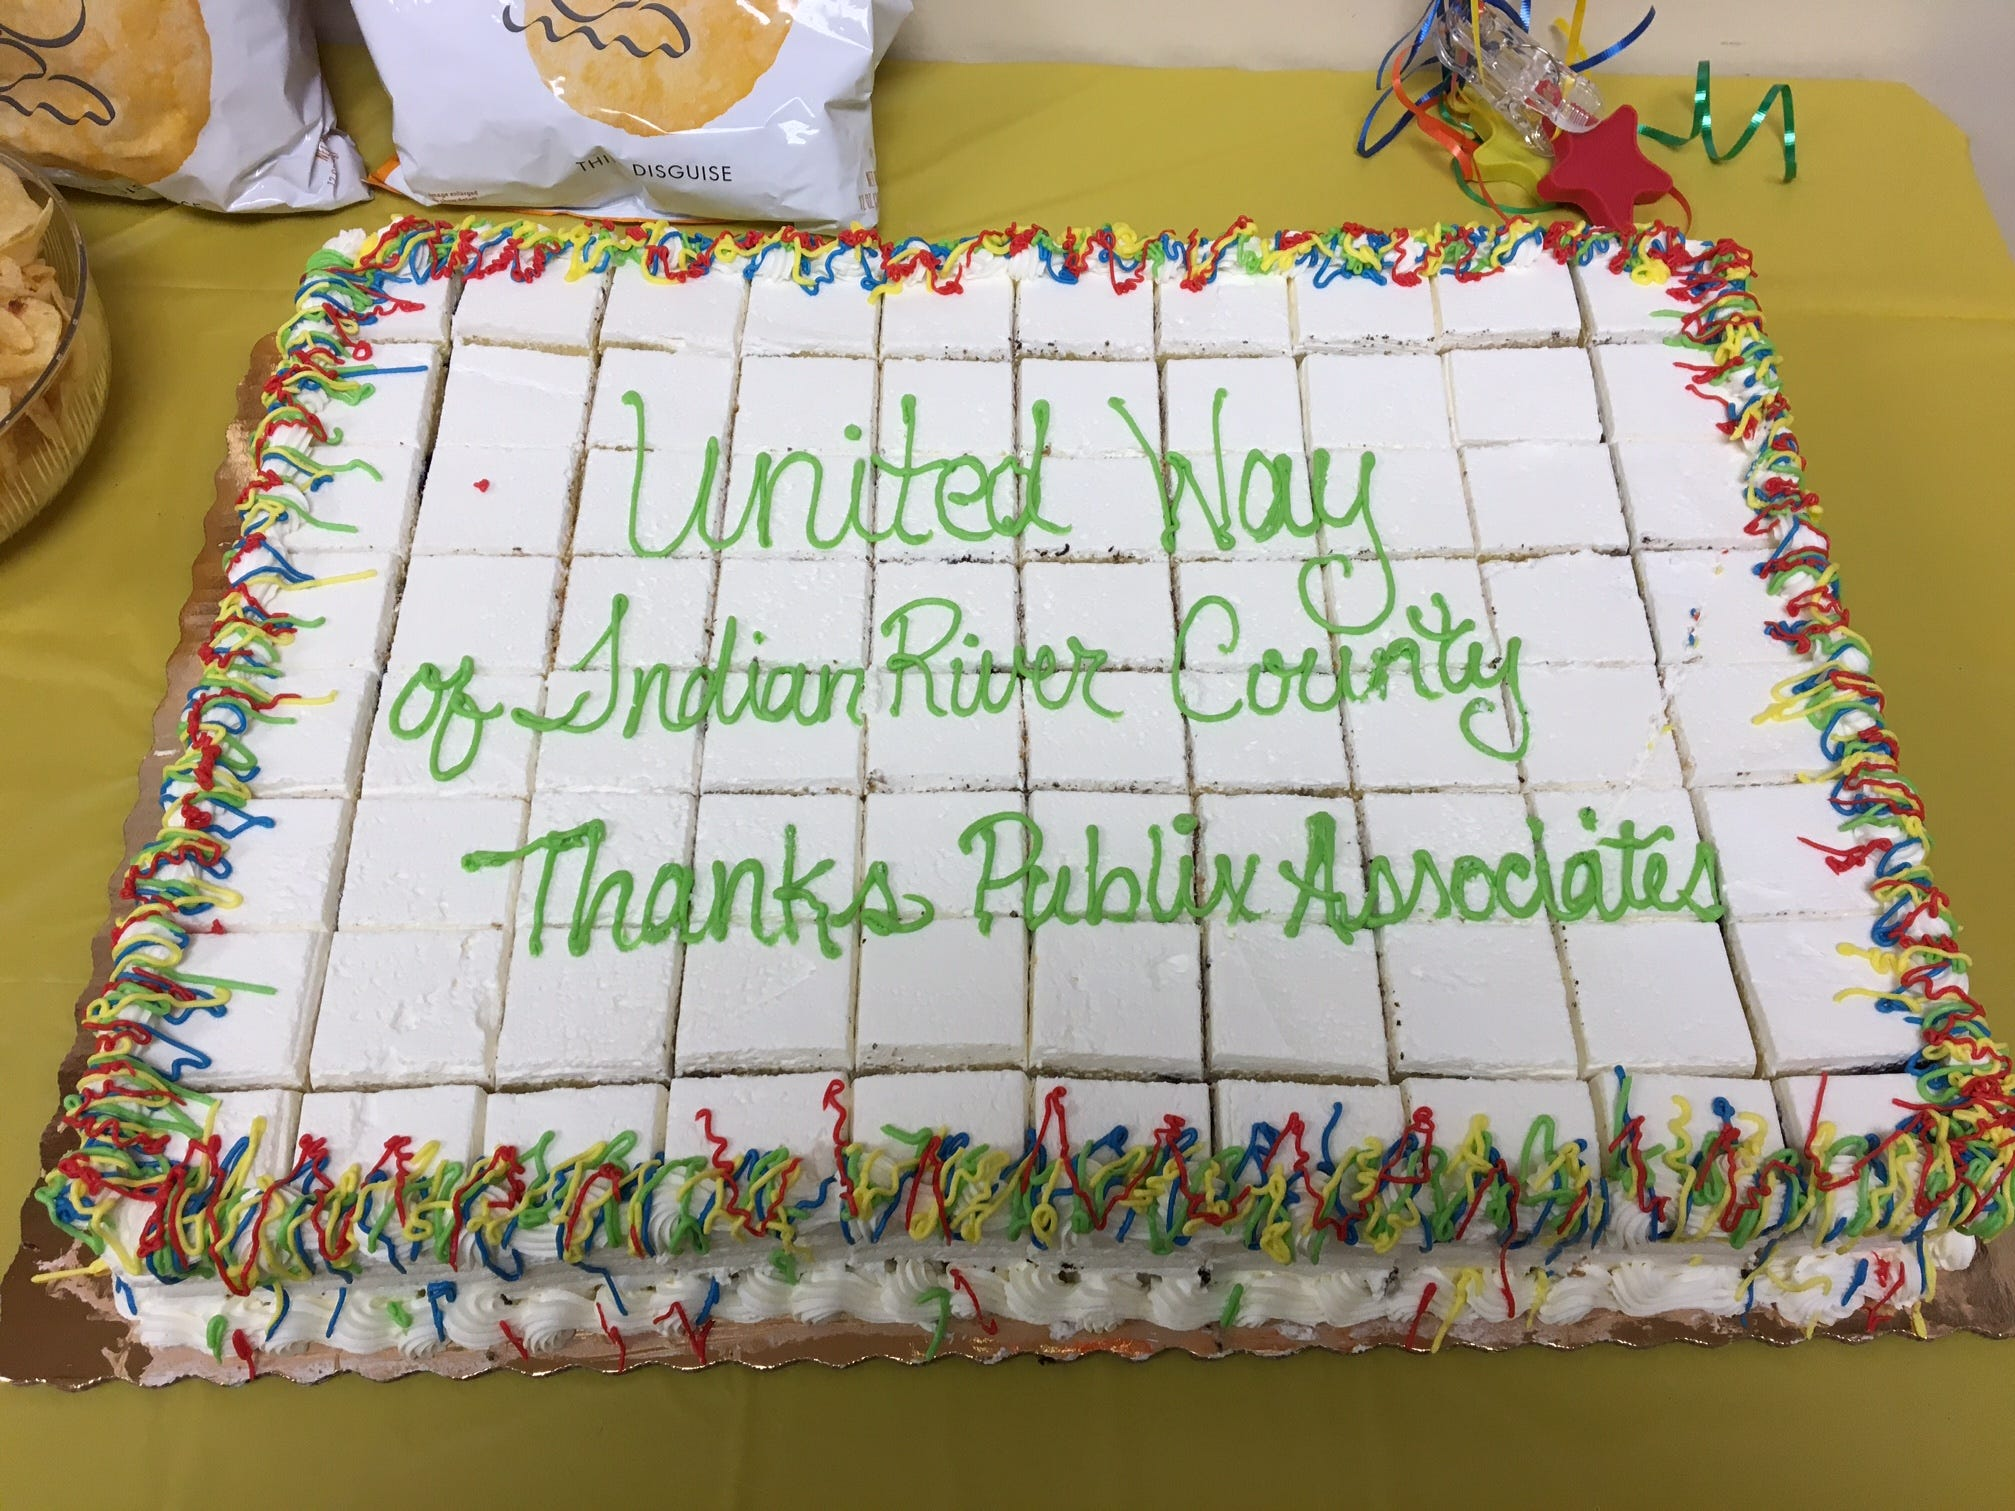 United Way of Indian River County shows its appreciation to Publix employees for their continued support.